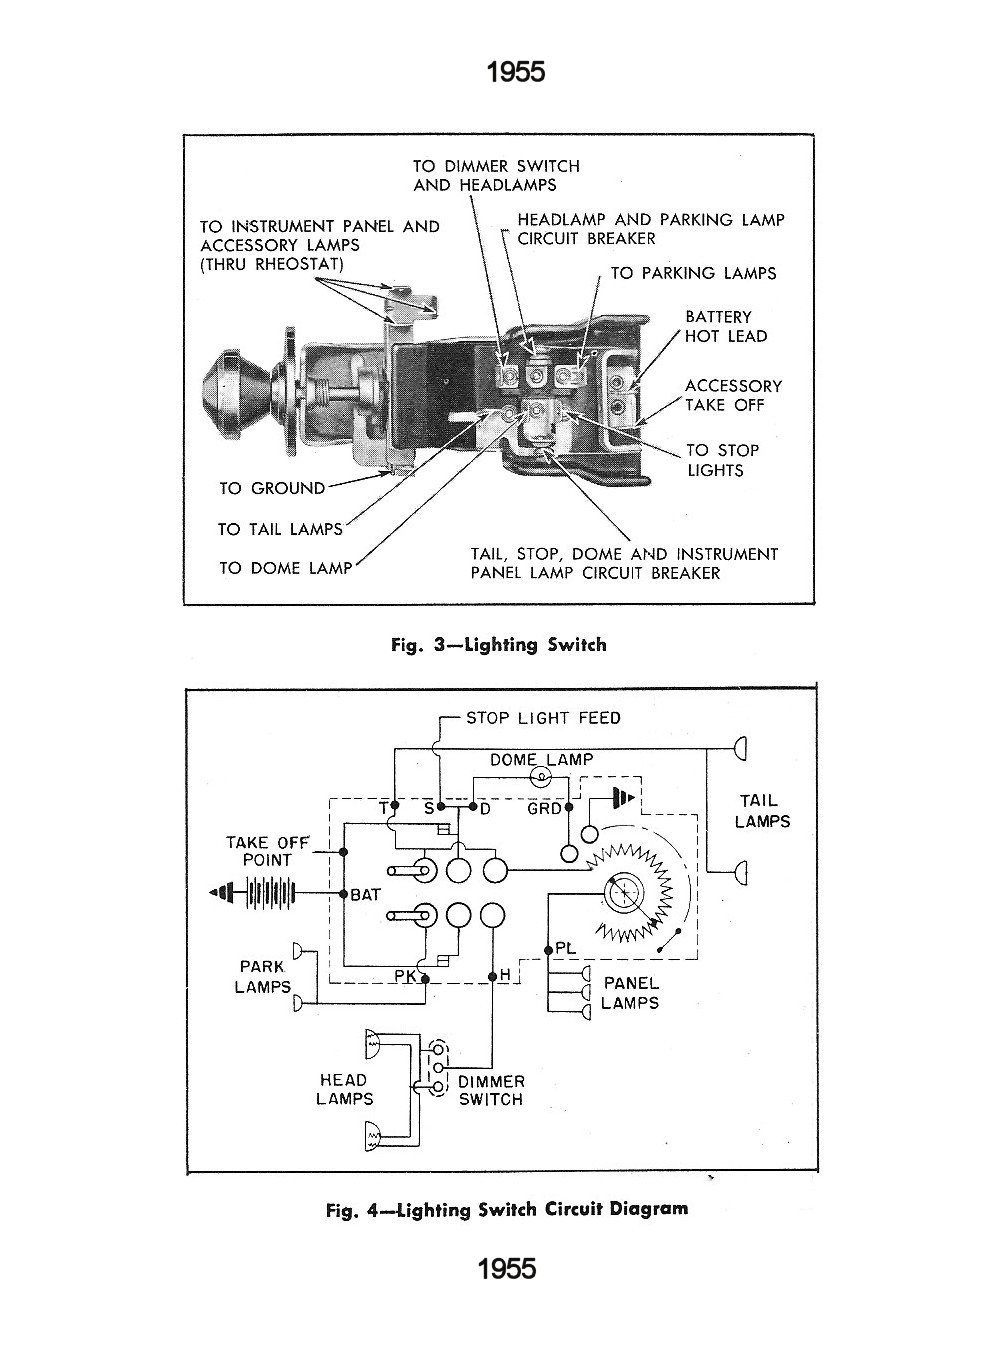 55 Chevy Wiring Schematic Fuse | Wiring Diagram on chevy light switch wiring, chevy window switch wiring, chevy fuel pump relay wiring, chevy speaker wiring, chevy ignition coil wiring, chevy horn relay wiring, chevy steering column wiring, chevy starter wiring, chevy neutral safety switch wiring, chevy voltage regulator wiring, chevy headlight switch wiring, chevy fuel gauge wiring, chevy wiper motor wiring, chevy dome light wiring, chevy engine wiring,